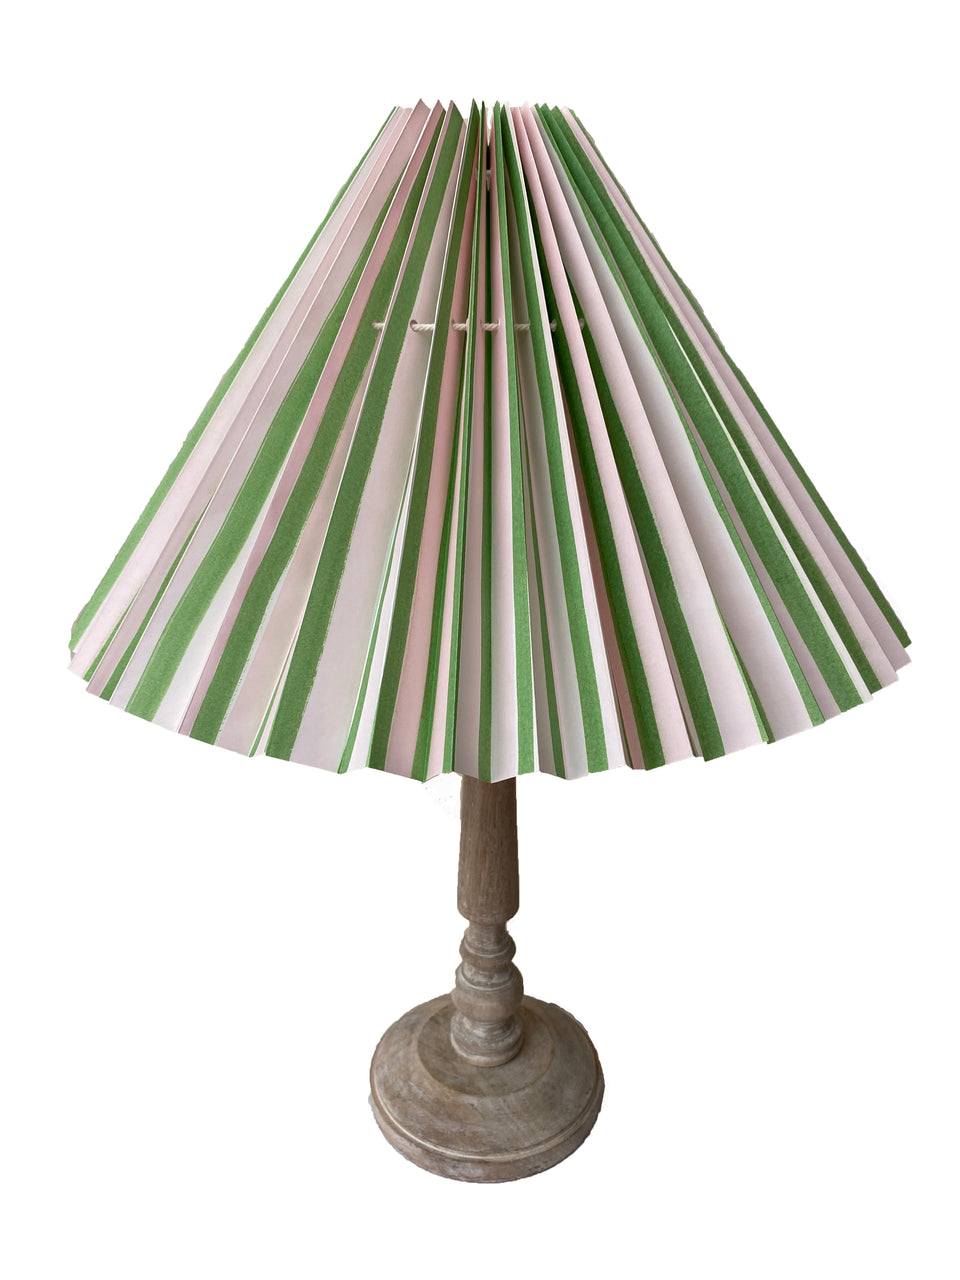 HANDMADE PAPER LAMPSHADE IN GREEN AND PALE PINK STRIPE